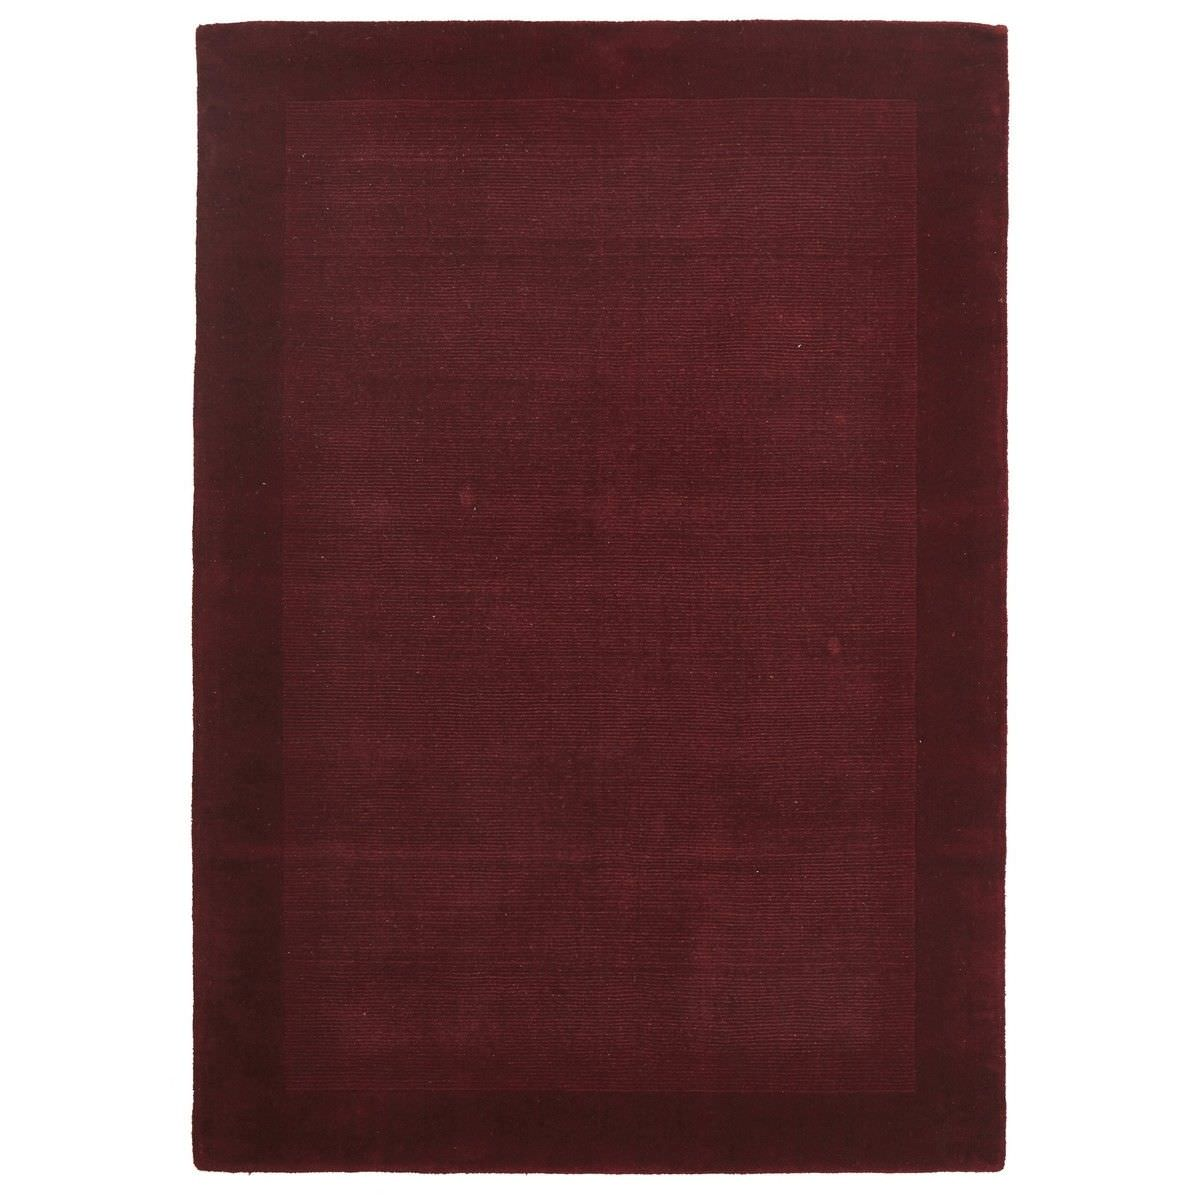 Luxe Hand Tufted Wool Runner Rug, 225x155cm, Red